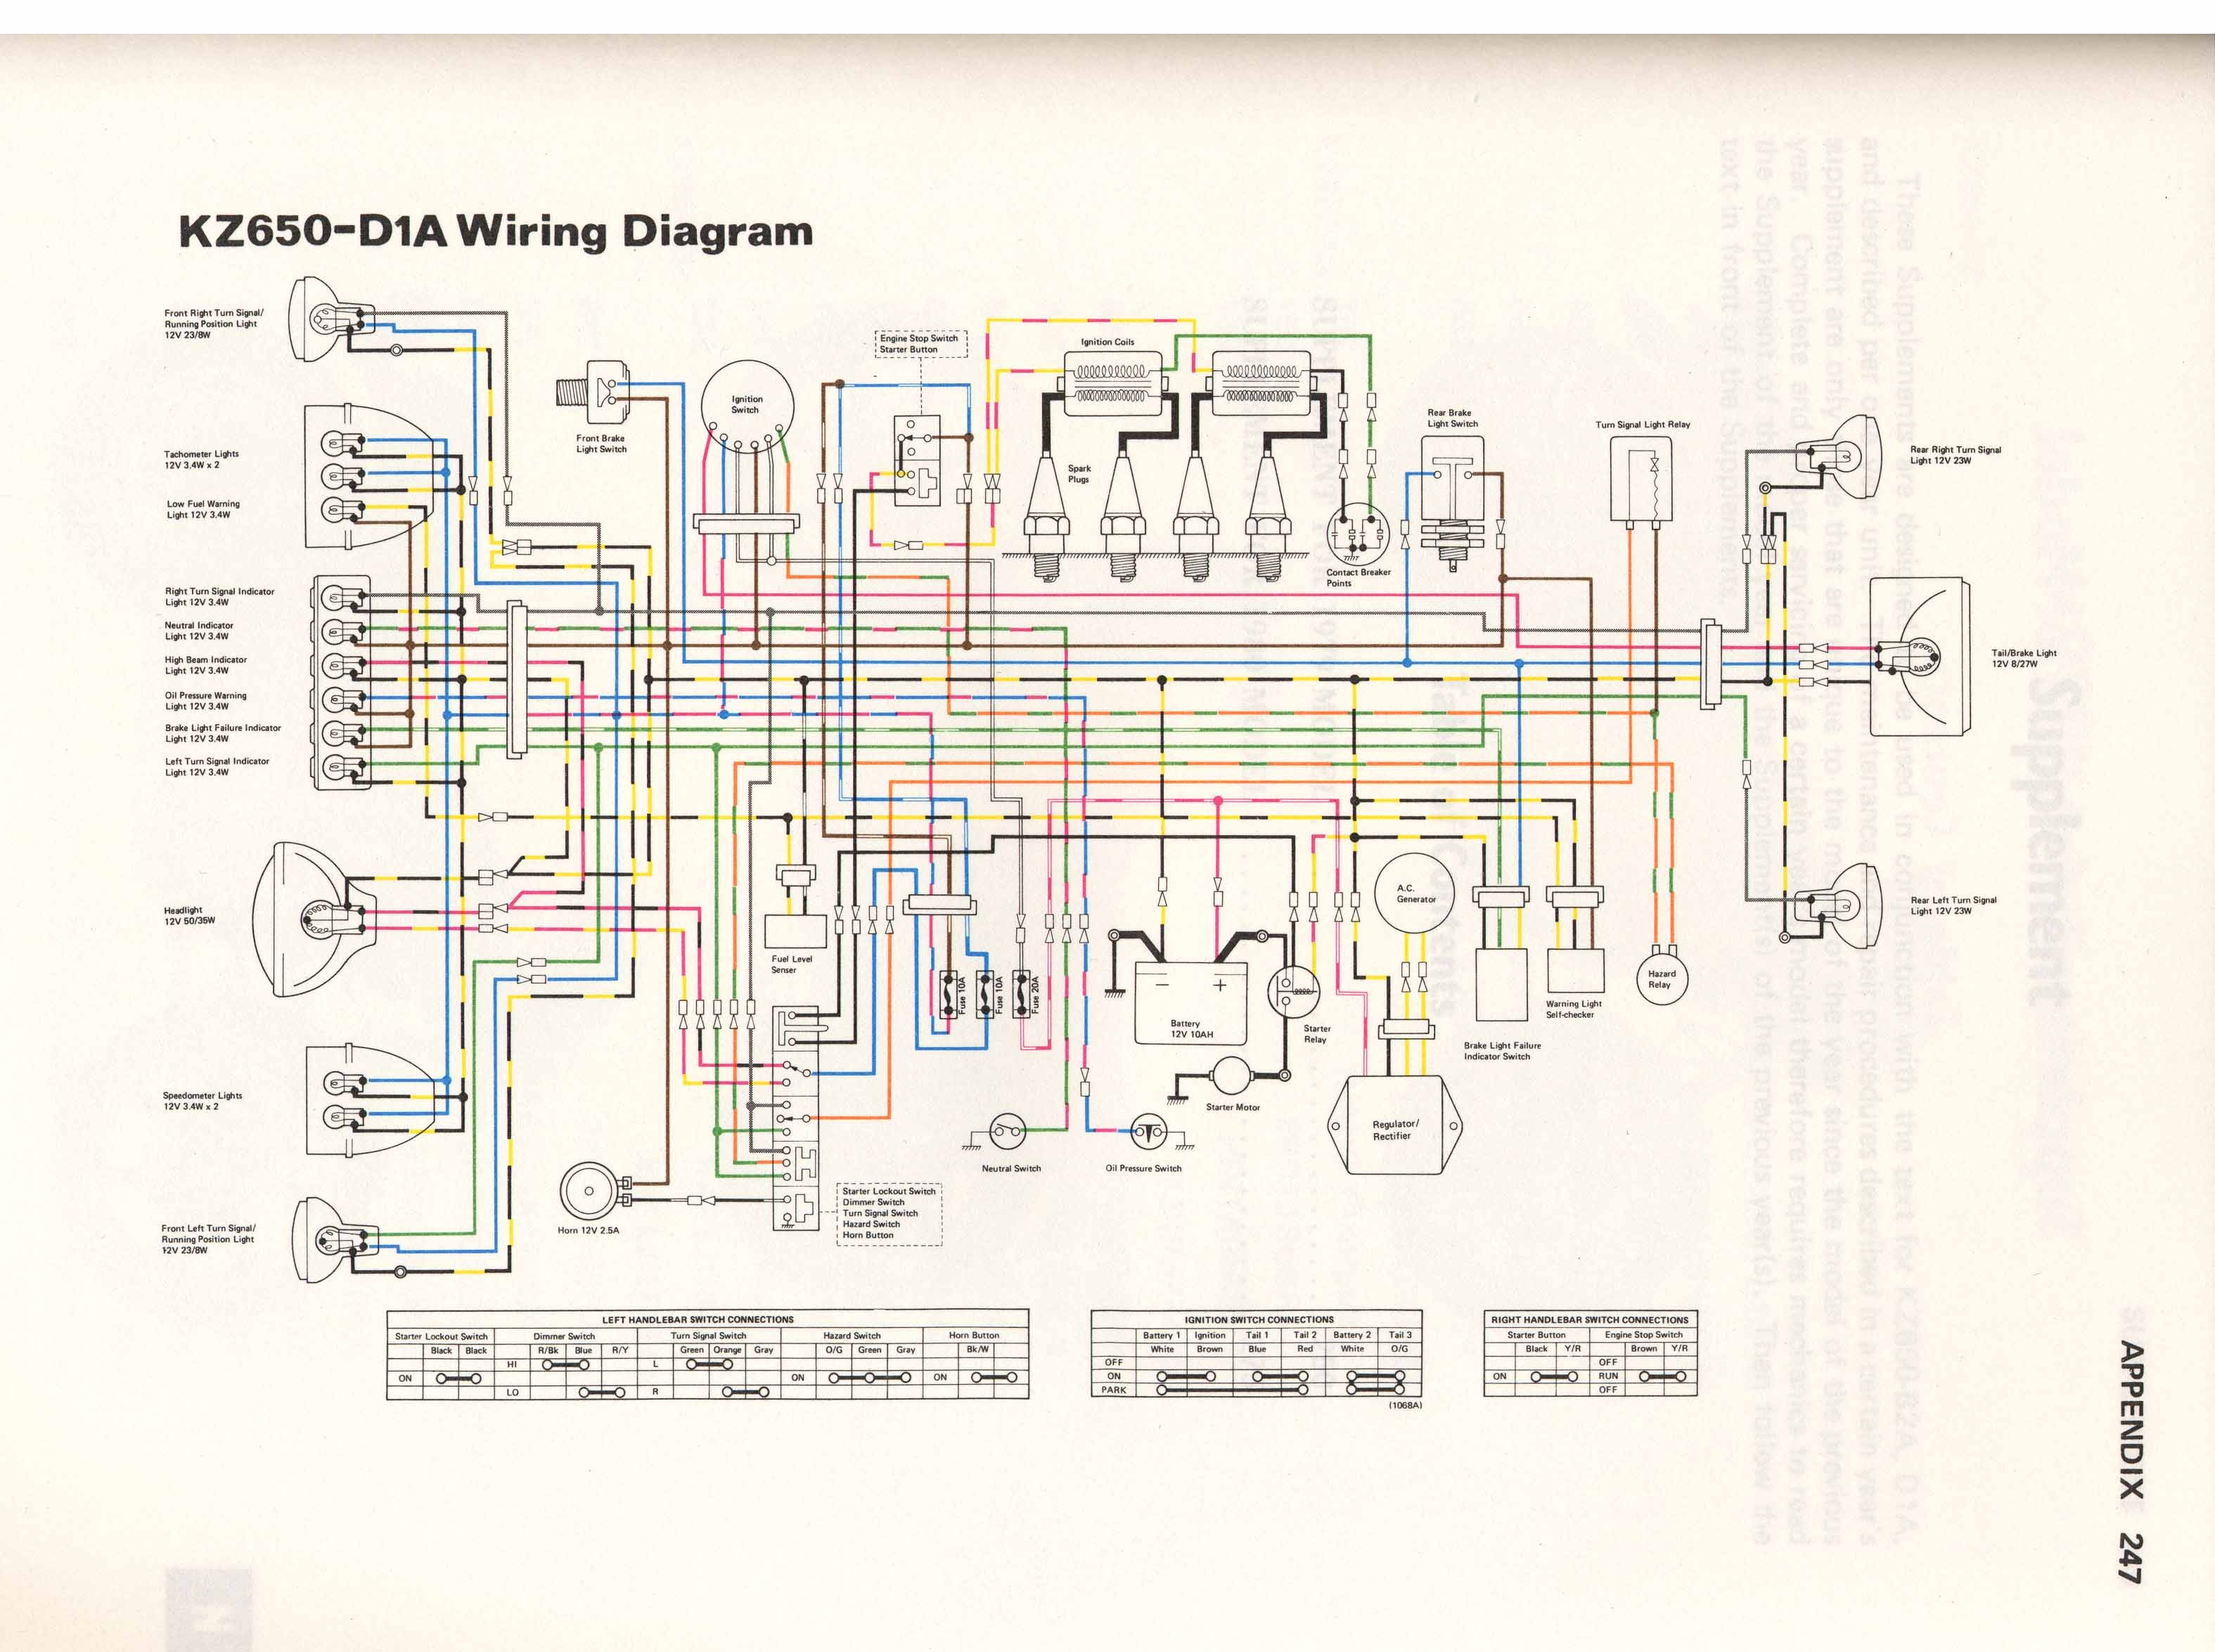 kdx400 wiring diagram wiring diagram portal u2022 rh getcircuitdiagram today ke175 wiring diagram